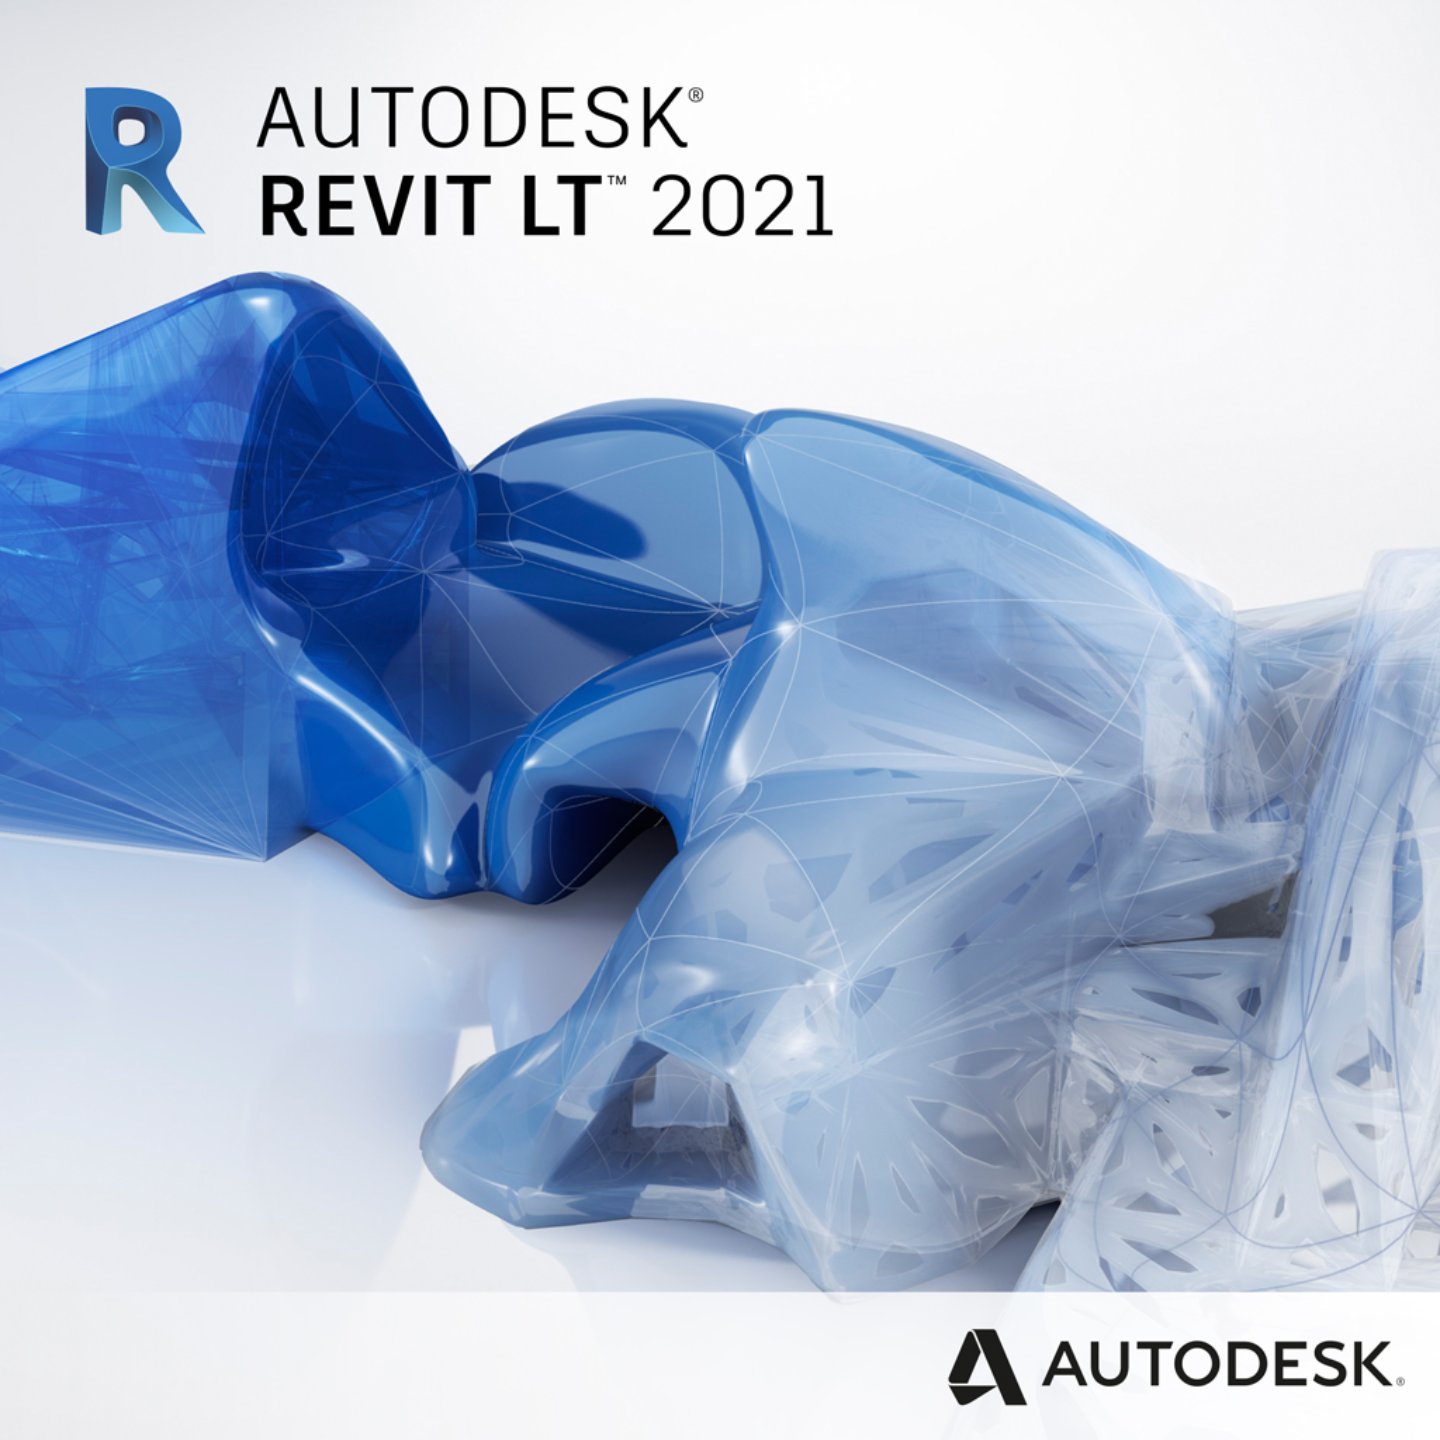 Autodesk Autocad Revit LT Suite 2021 (1-Year Subscription)